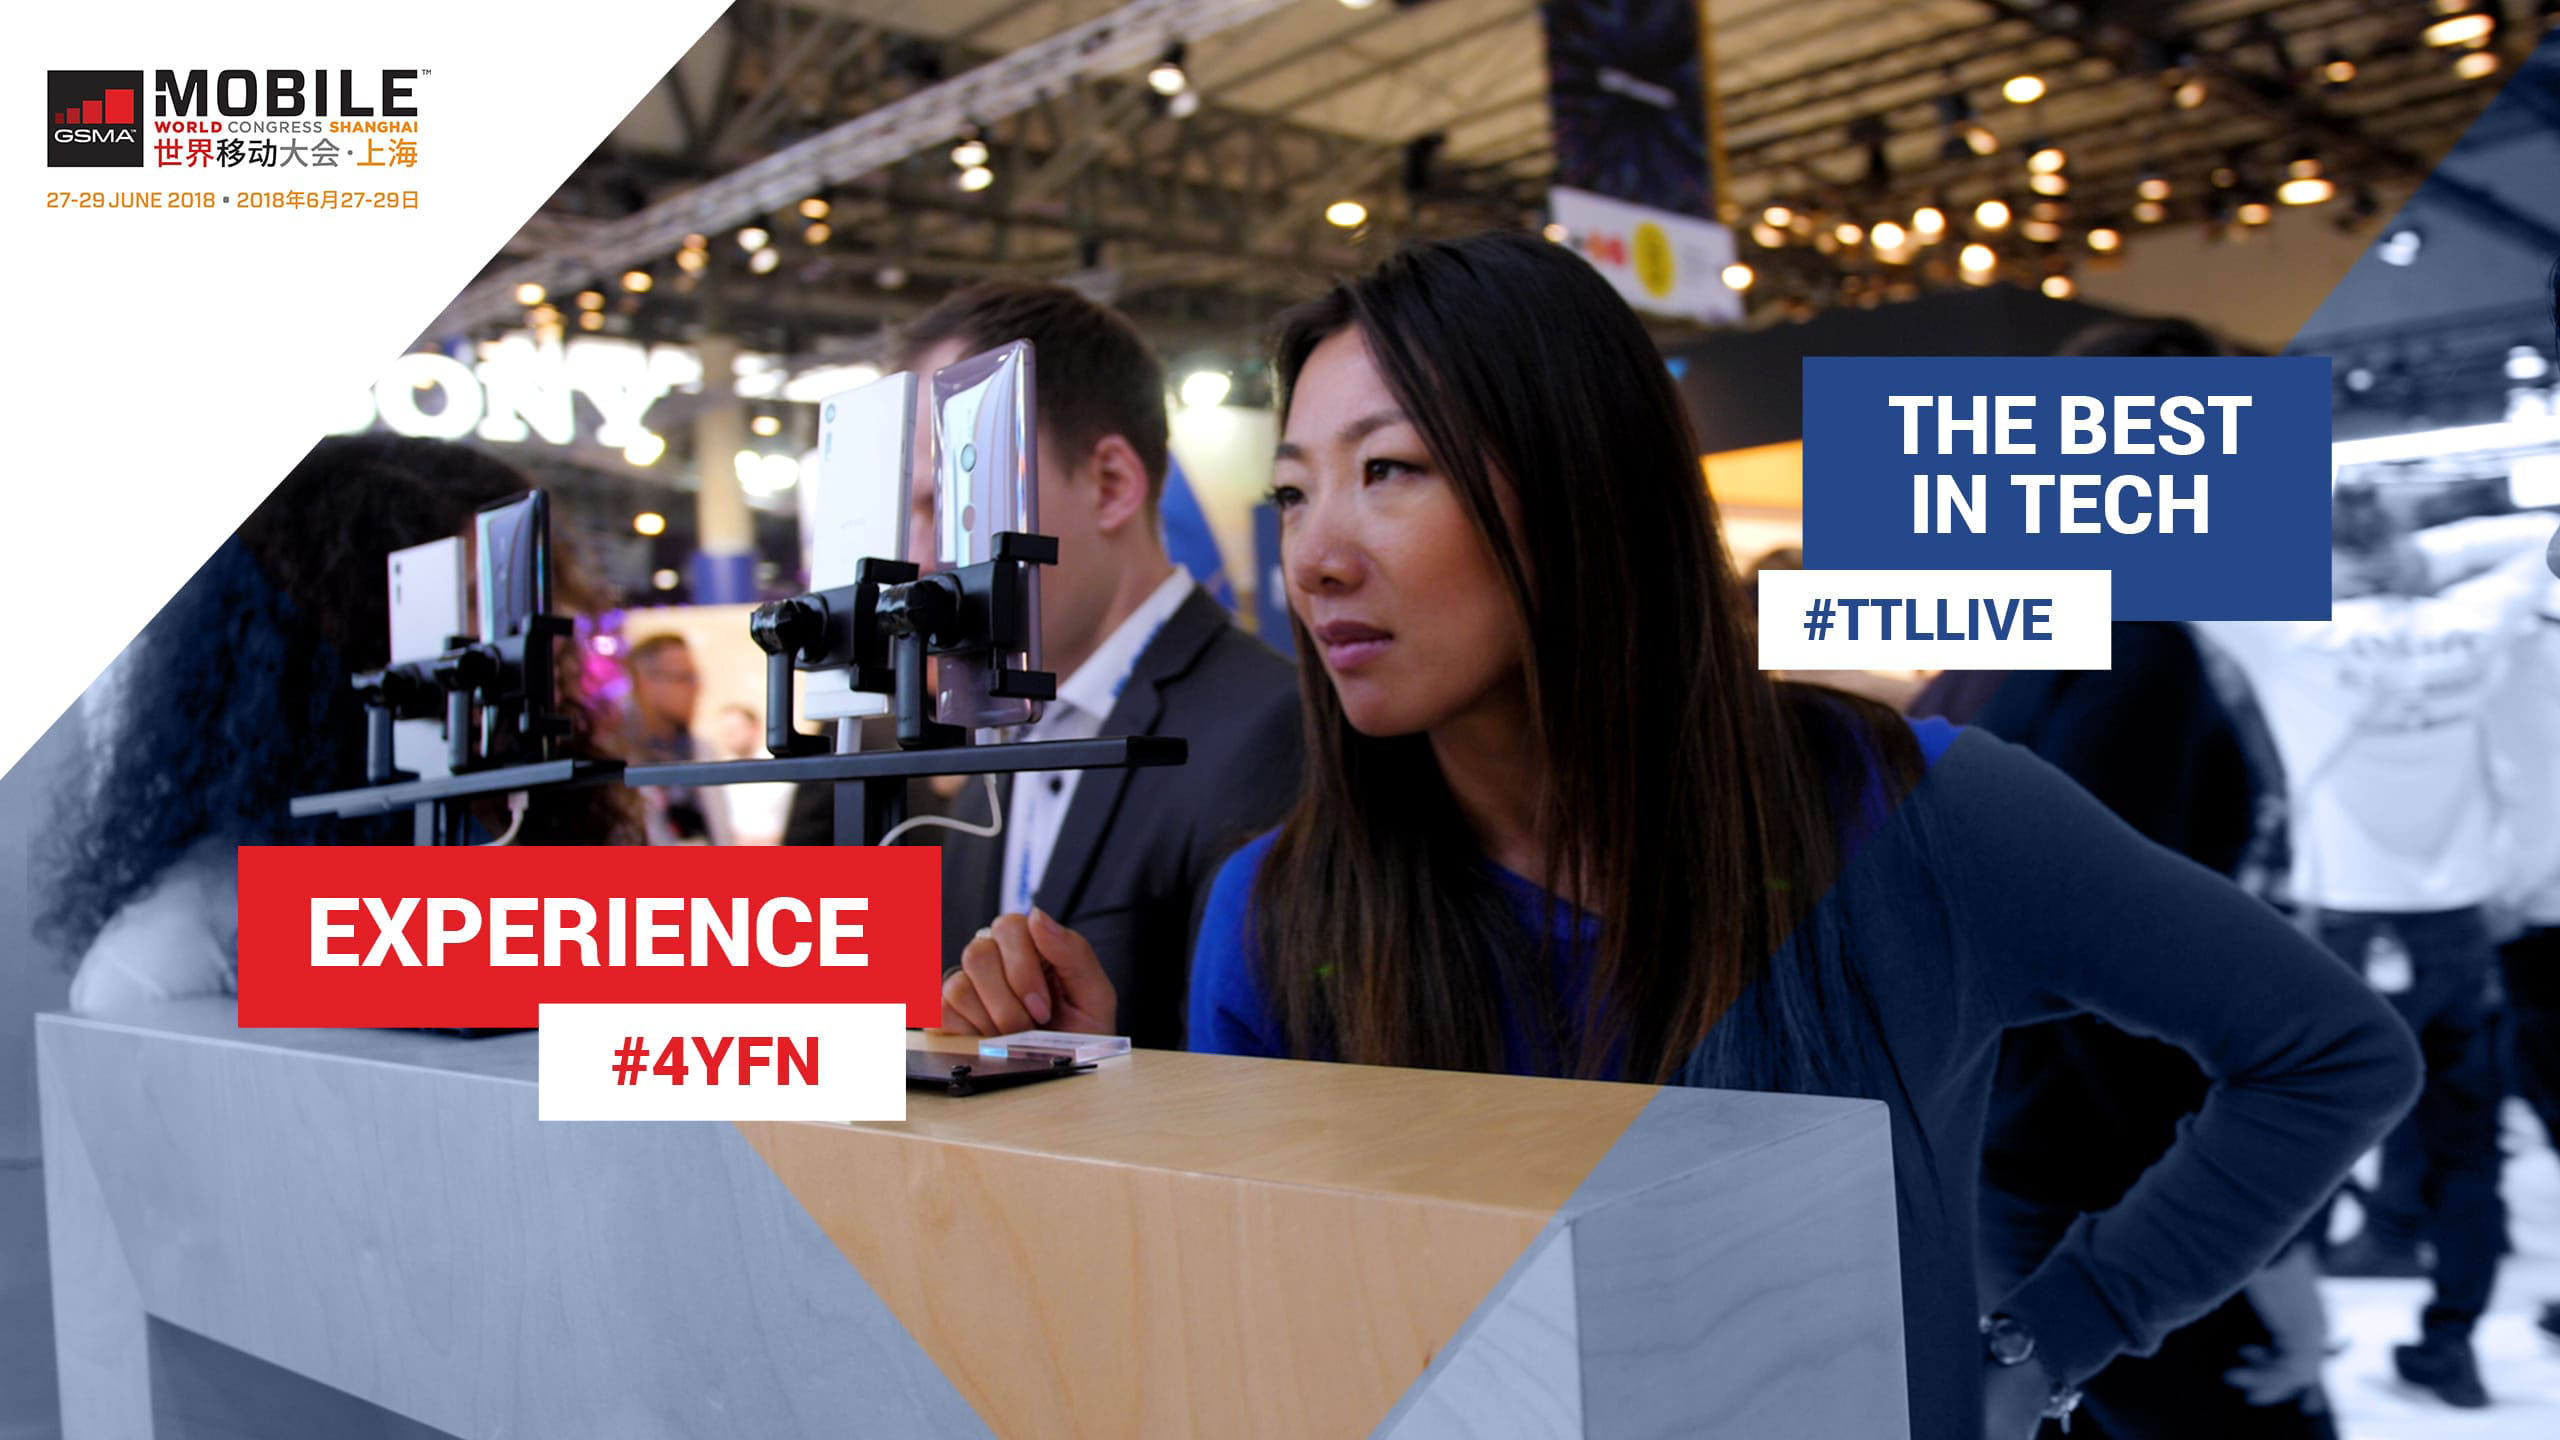 feat-image-mwc-shanghai